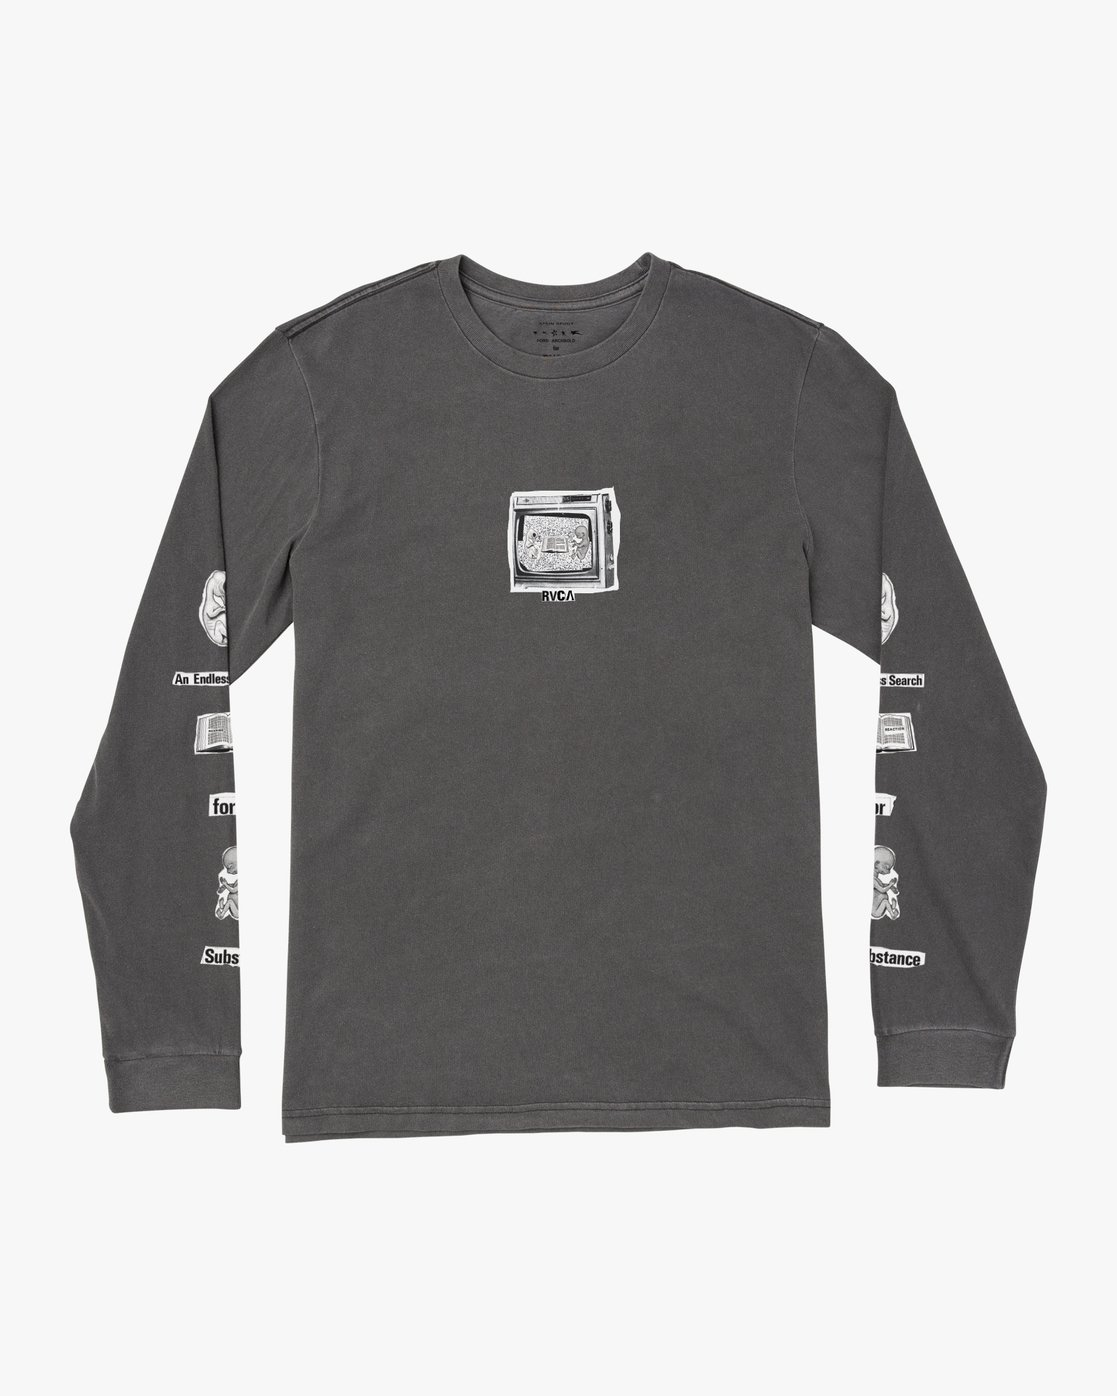 0 ENDLESS SEARCH LONG SLEEVE TEE Black M4551RES RVCA